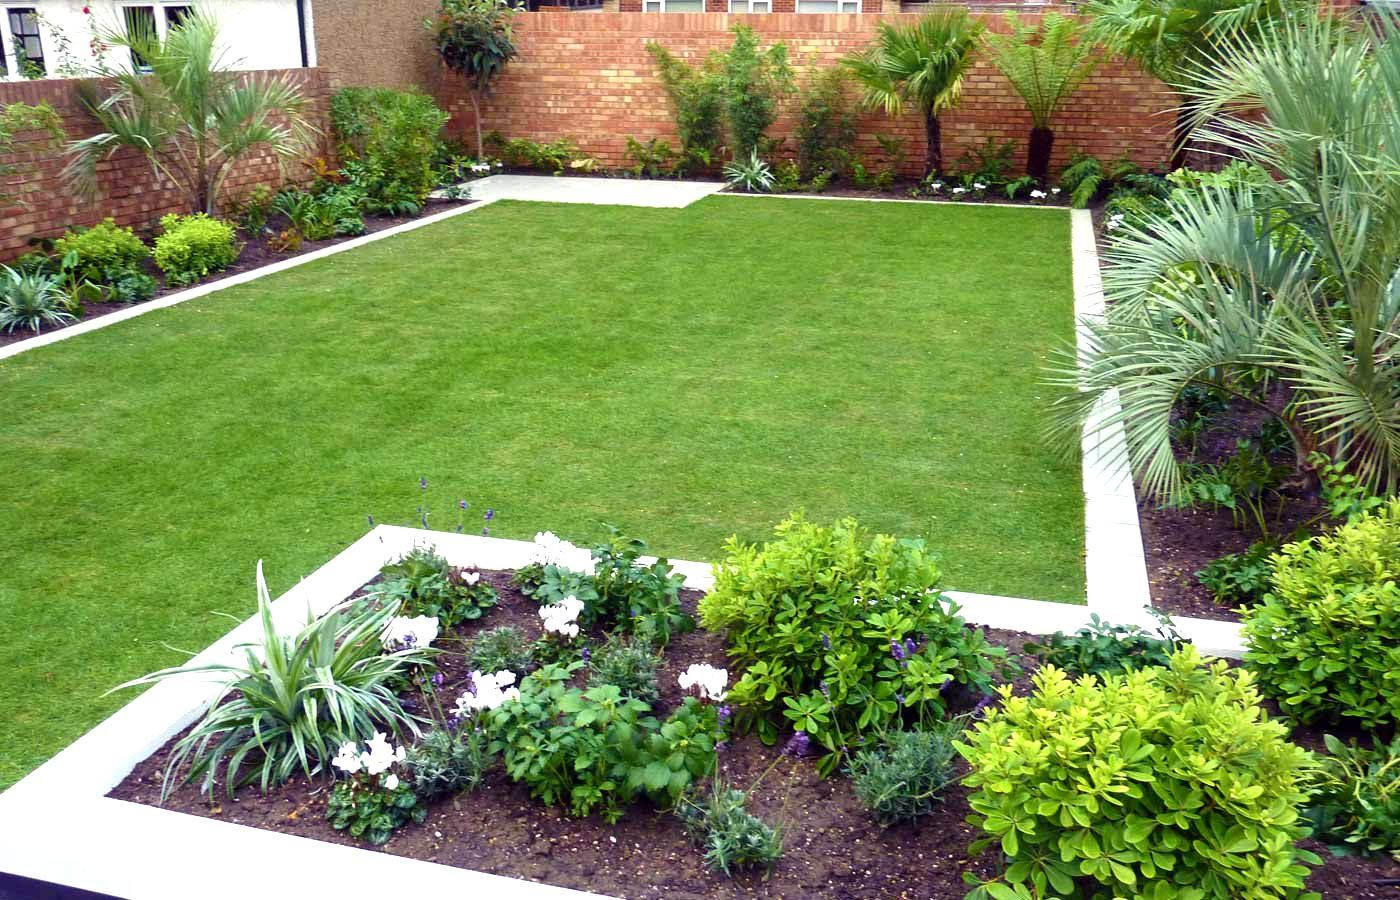 Landscape Small Garden : Simple garden designs no fret small design